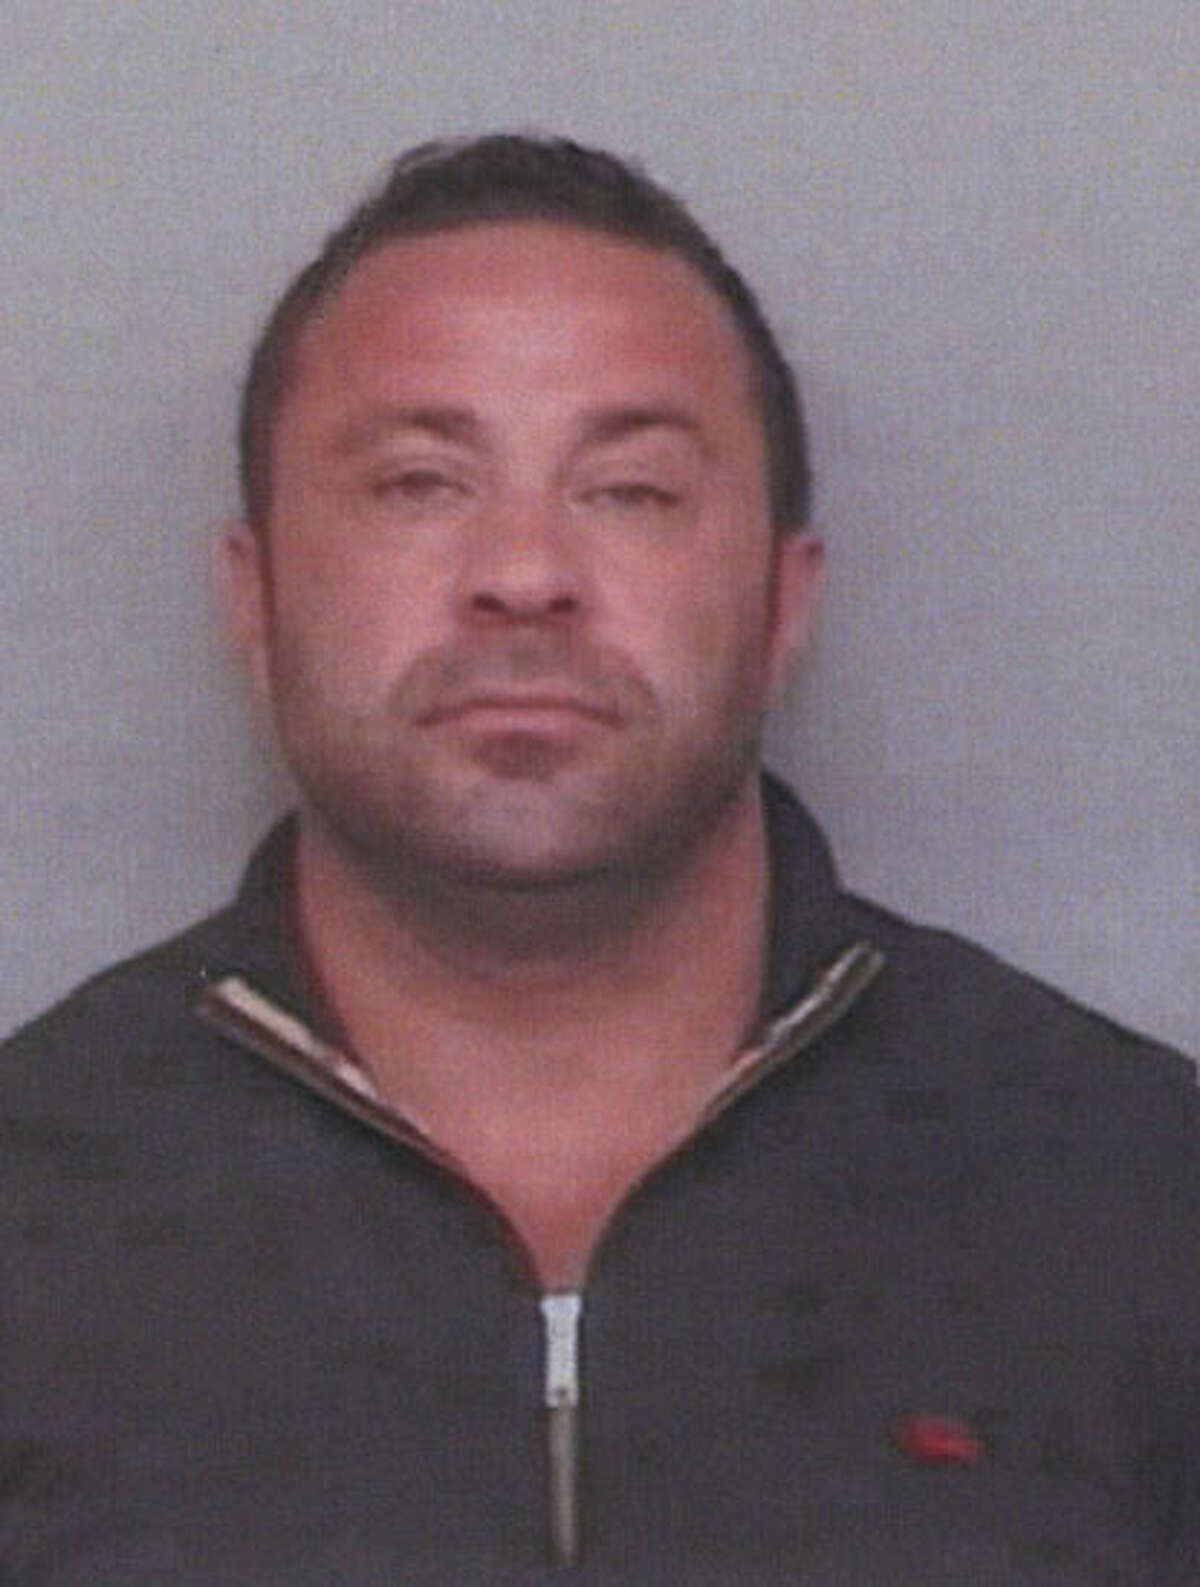 This is not Joe Giudice's first run-in with the law. After having his license suspended in 2010 after being served with a DUI, Giudice was charged with one count wrongfully using identifying information of another and one count impersonation after using his brother Pietro (Pete) Giudice's information, including his marriage and birth certificates to fraudulently get a new license at the Patterson DMV.